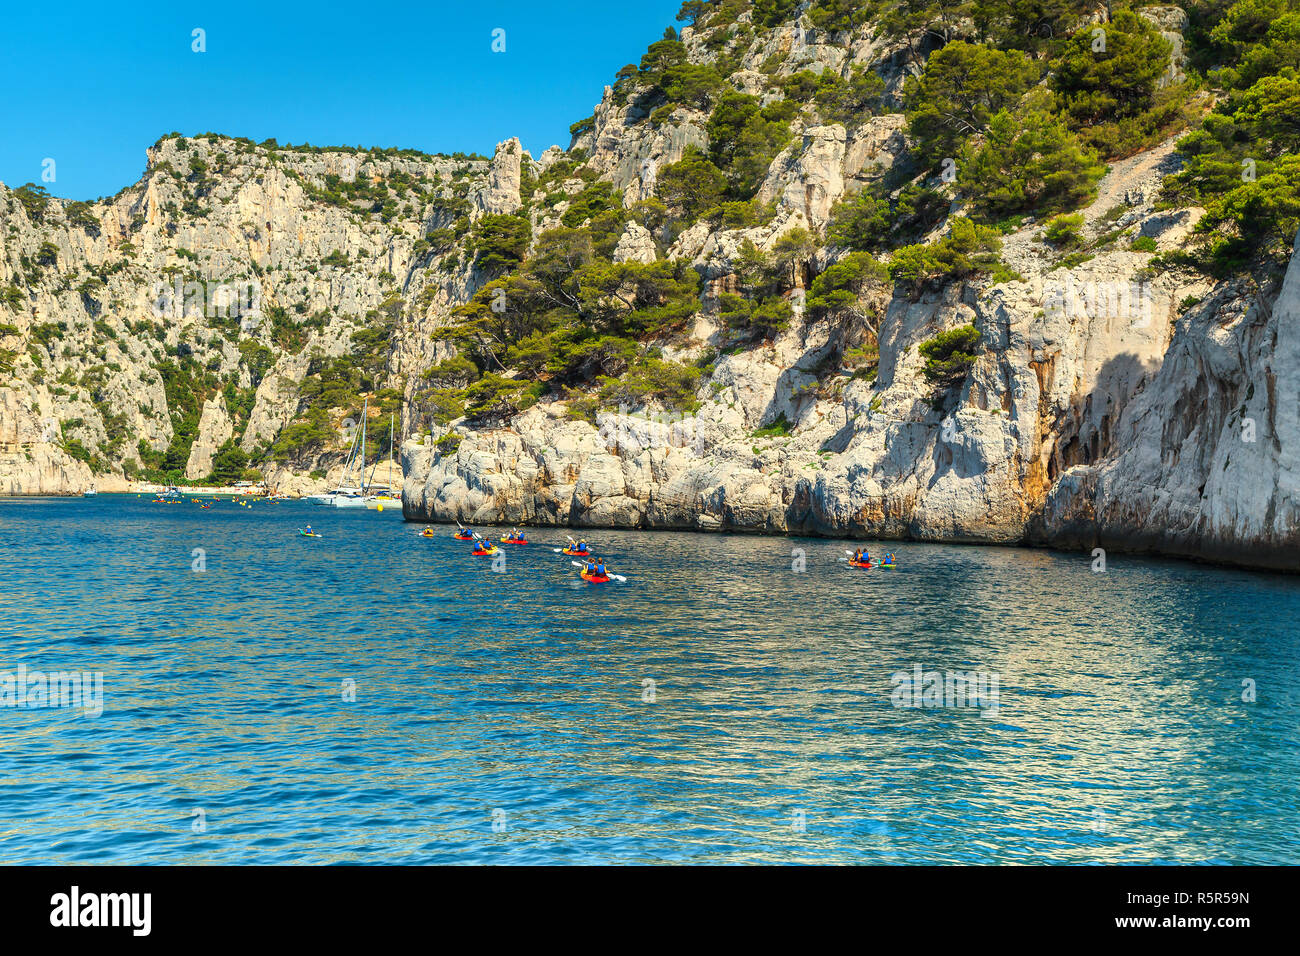 Location Canoe Cassis Summer Outdoor Activities Group Of Kayakers Paddling In Colorful